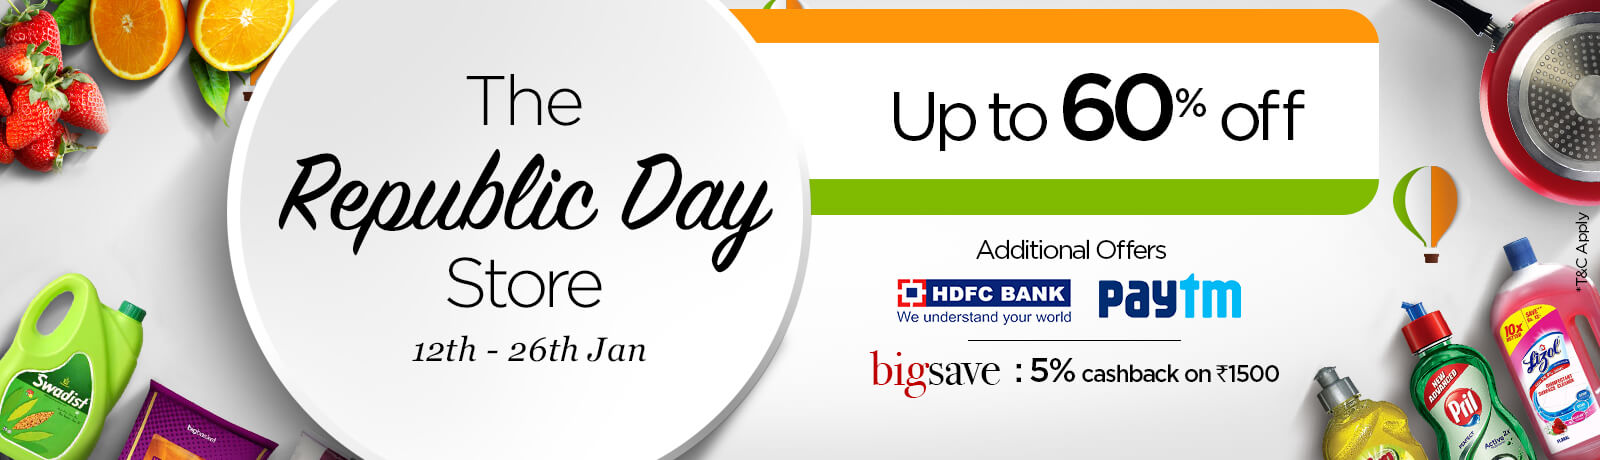 The Republic Day Store offers